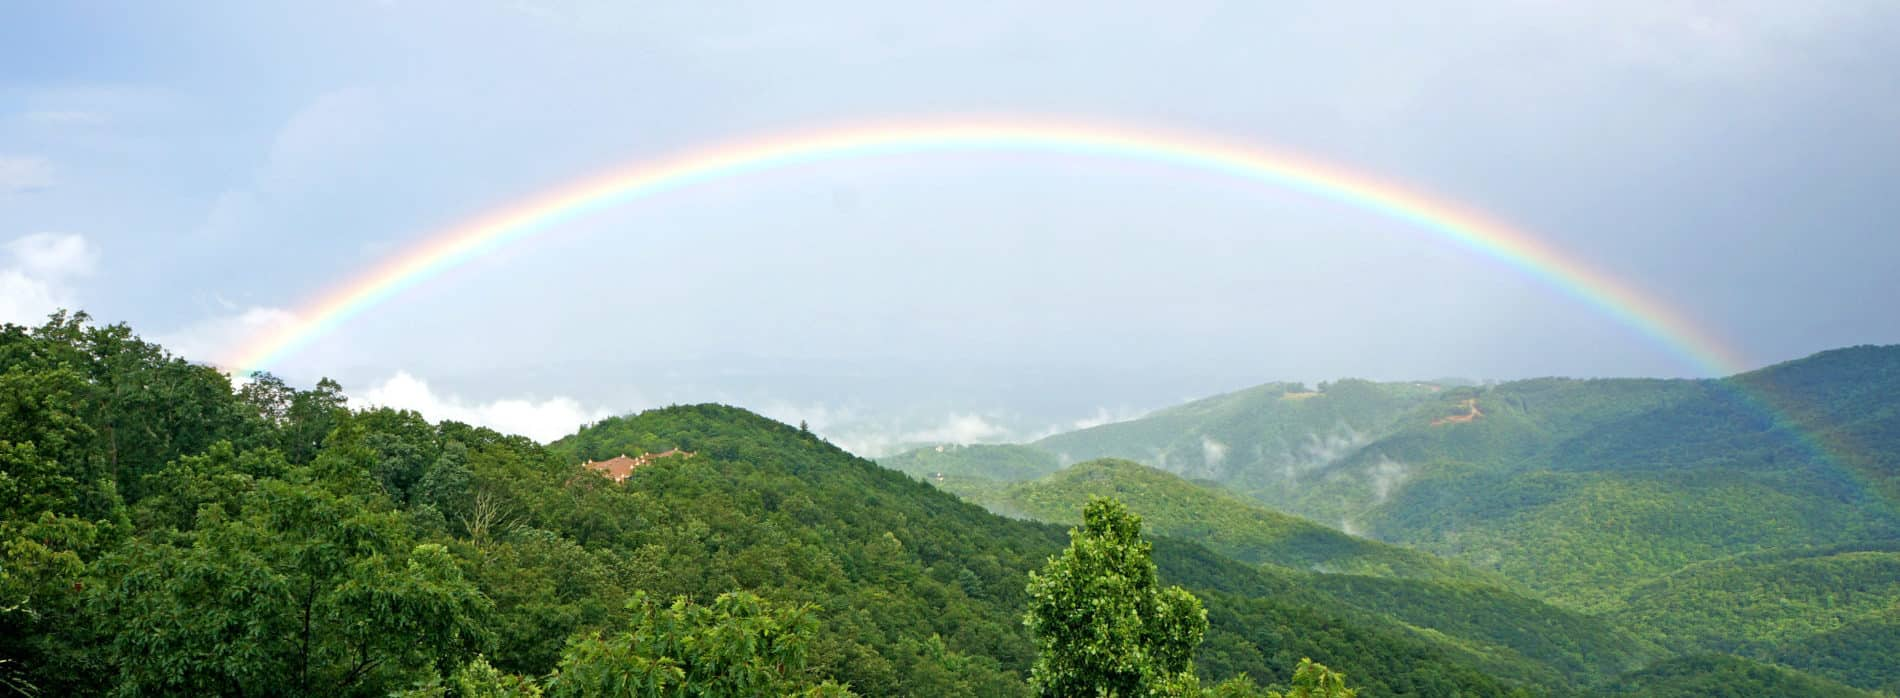 rainbow over valley at Art of Living Retreat Center